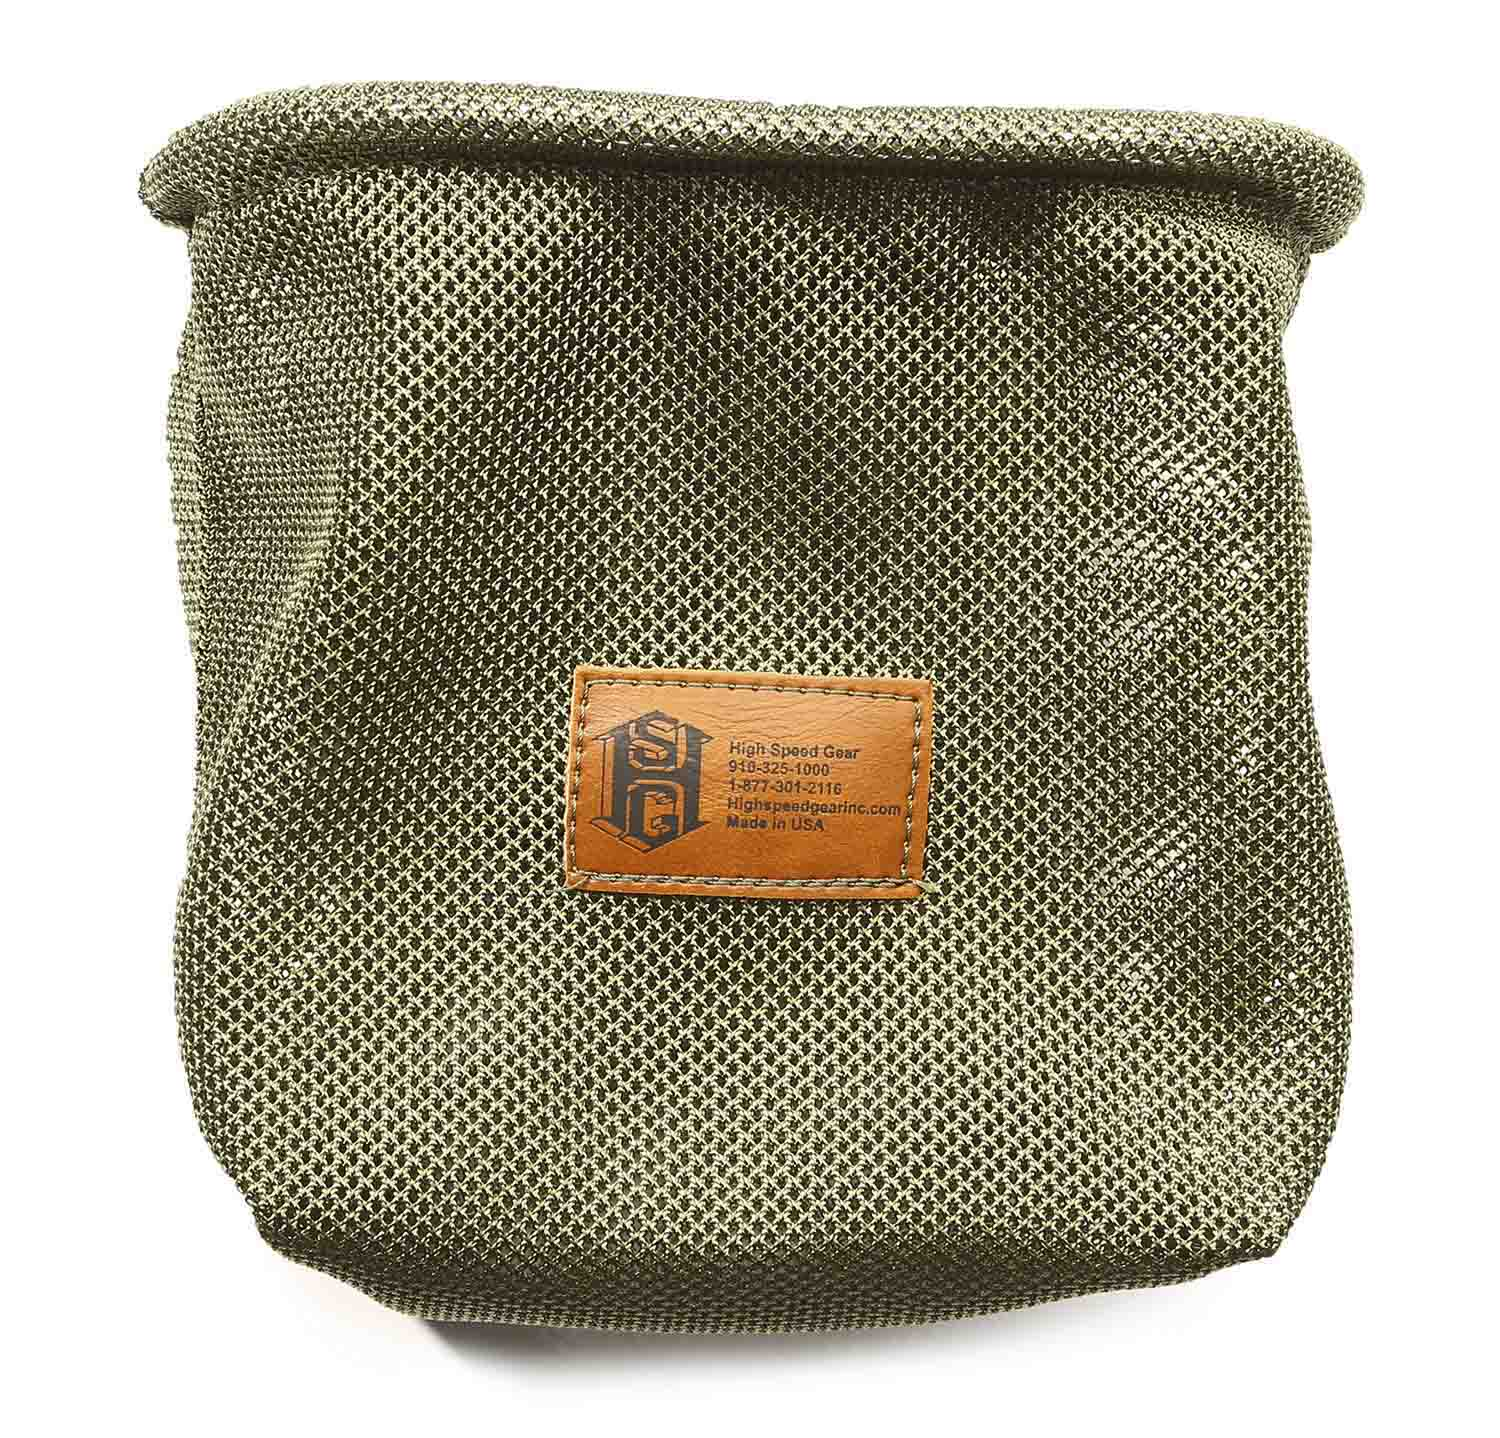 High Speed Gear Mag Net Dump Pouch